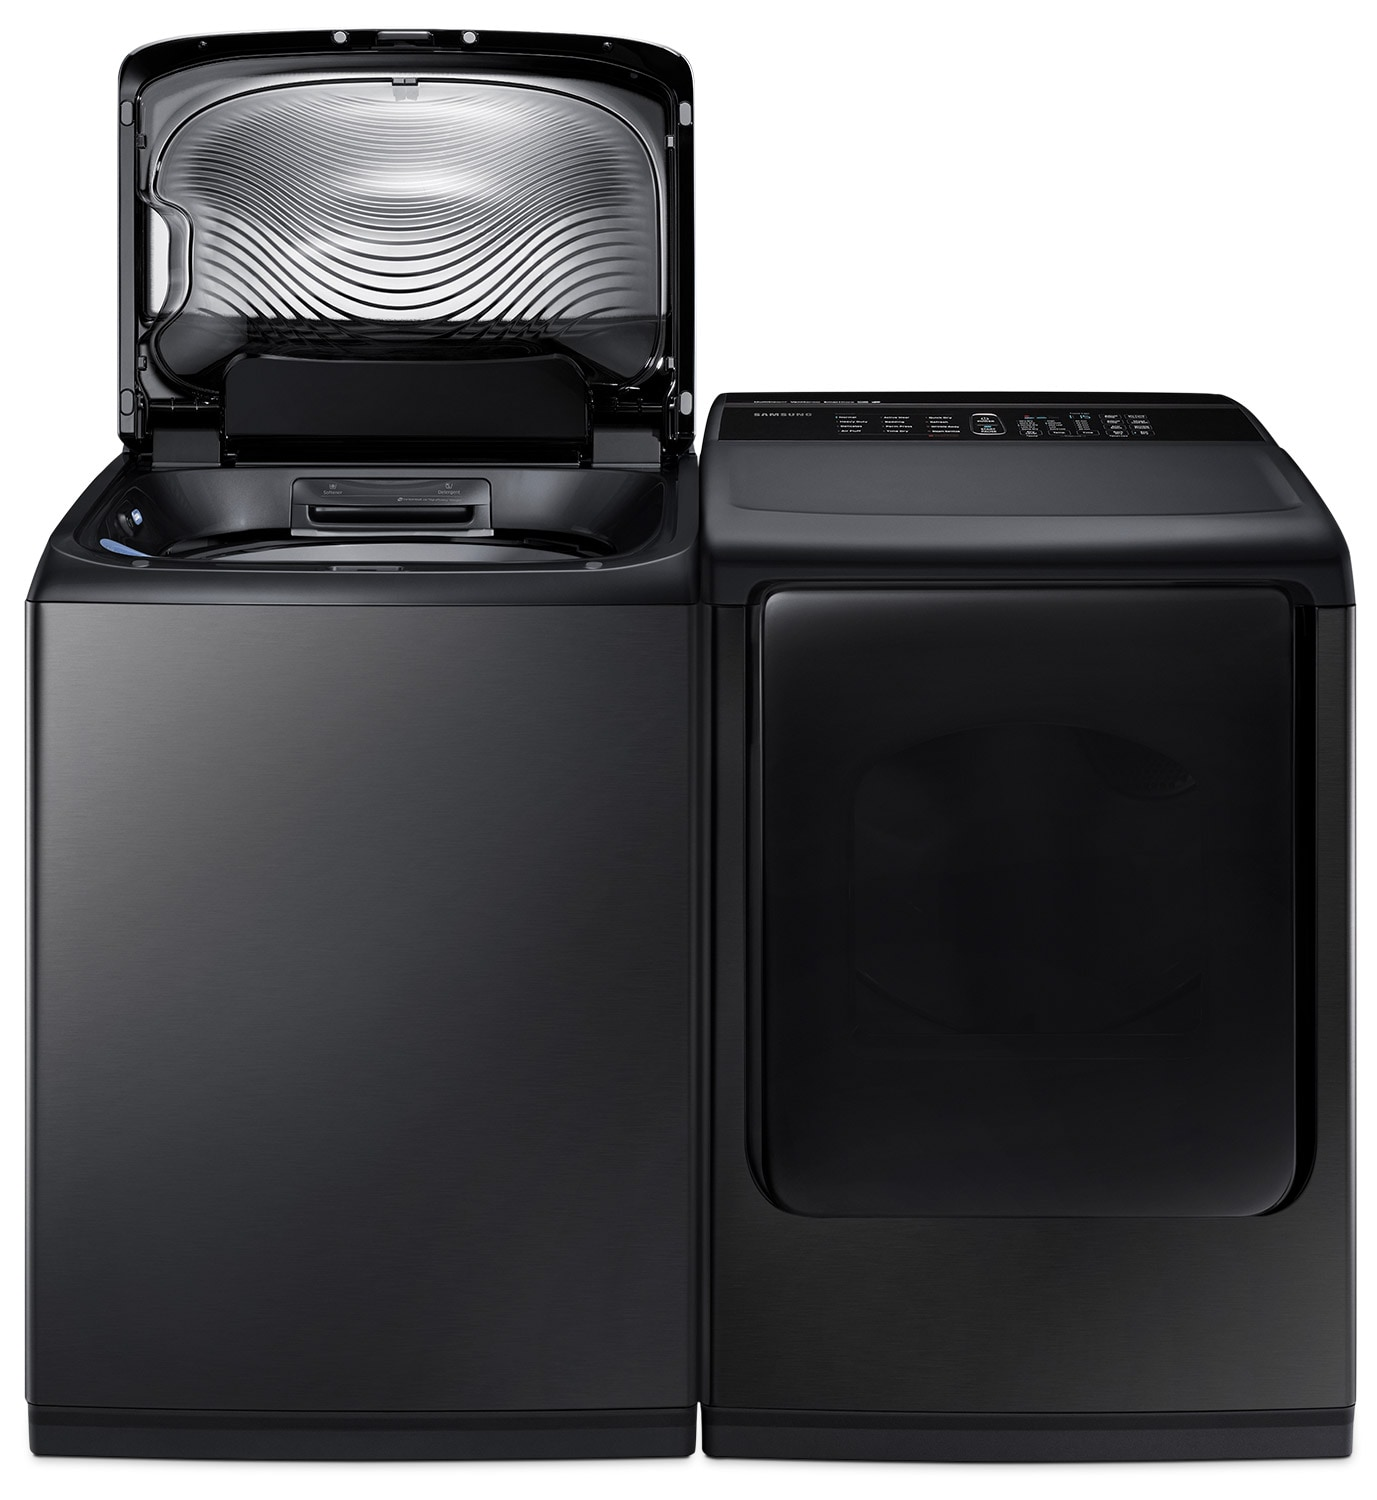 Samsung 5.8 Cu. Ft Top-Load Washer and 7.4 Cu. Ft. Electric Dryer – Black Stainless Steel